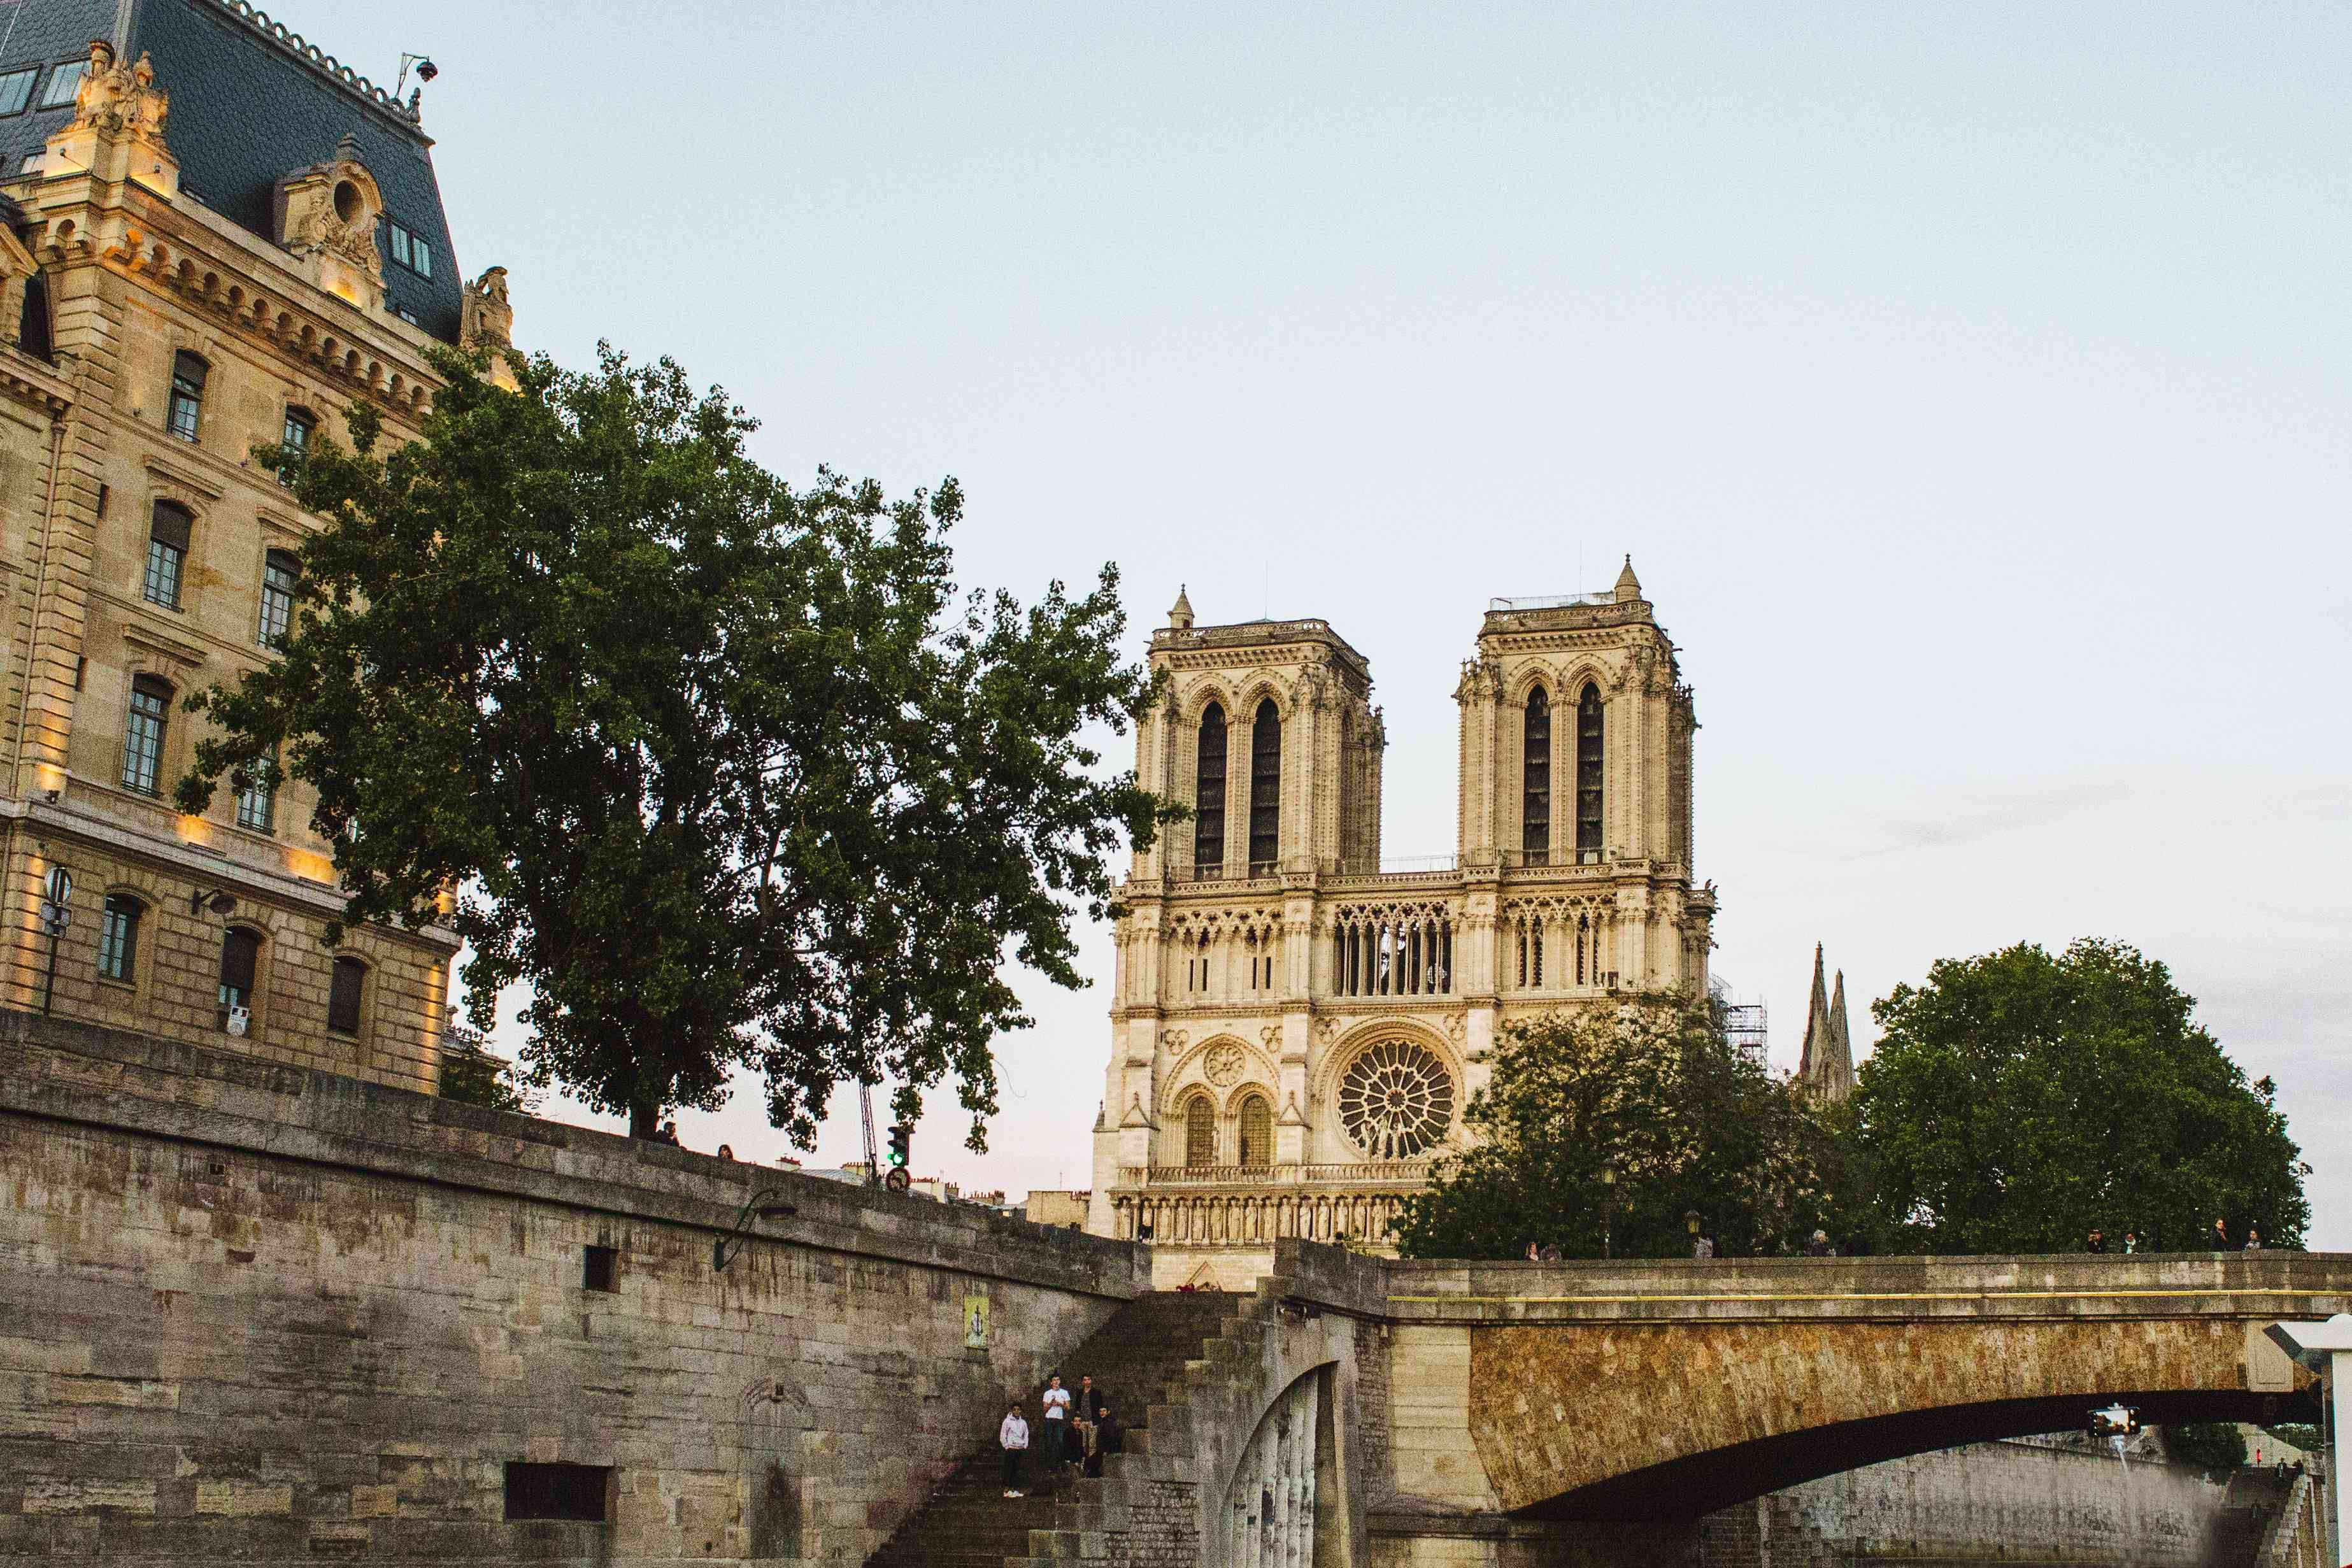 View of Notre Dame from the Seine river